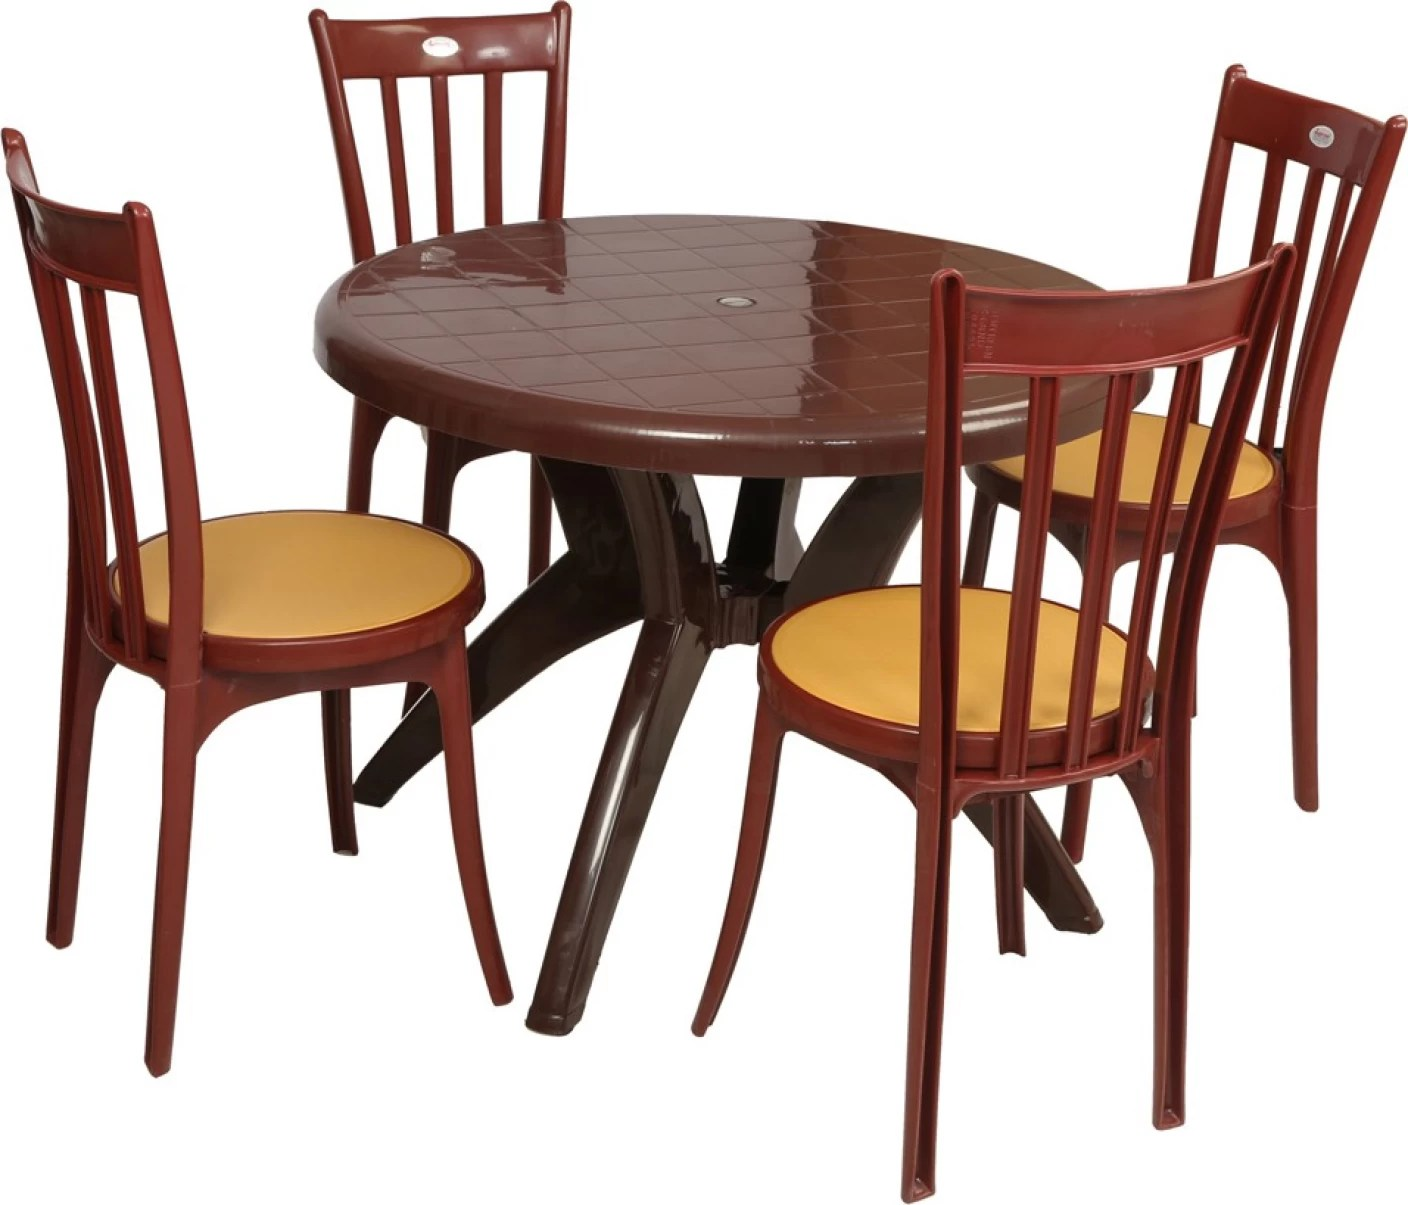 Supreme Furniture Chairs Price Supreme Teak Wood Plastic Table And Chair Set Price In India